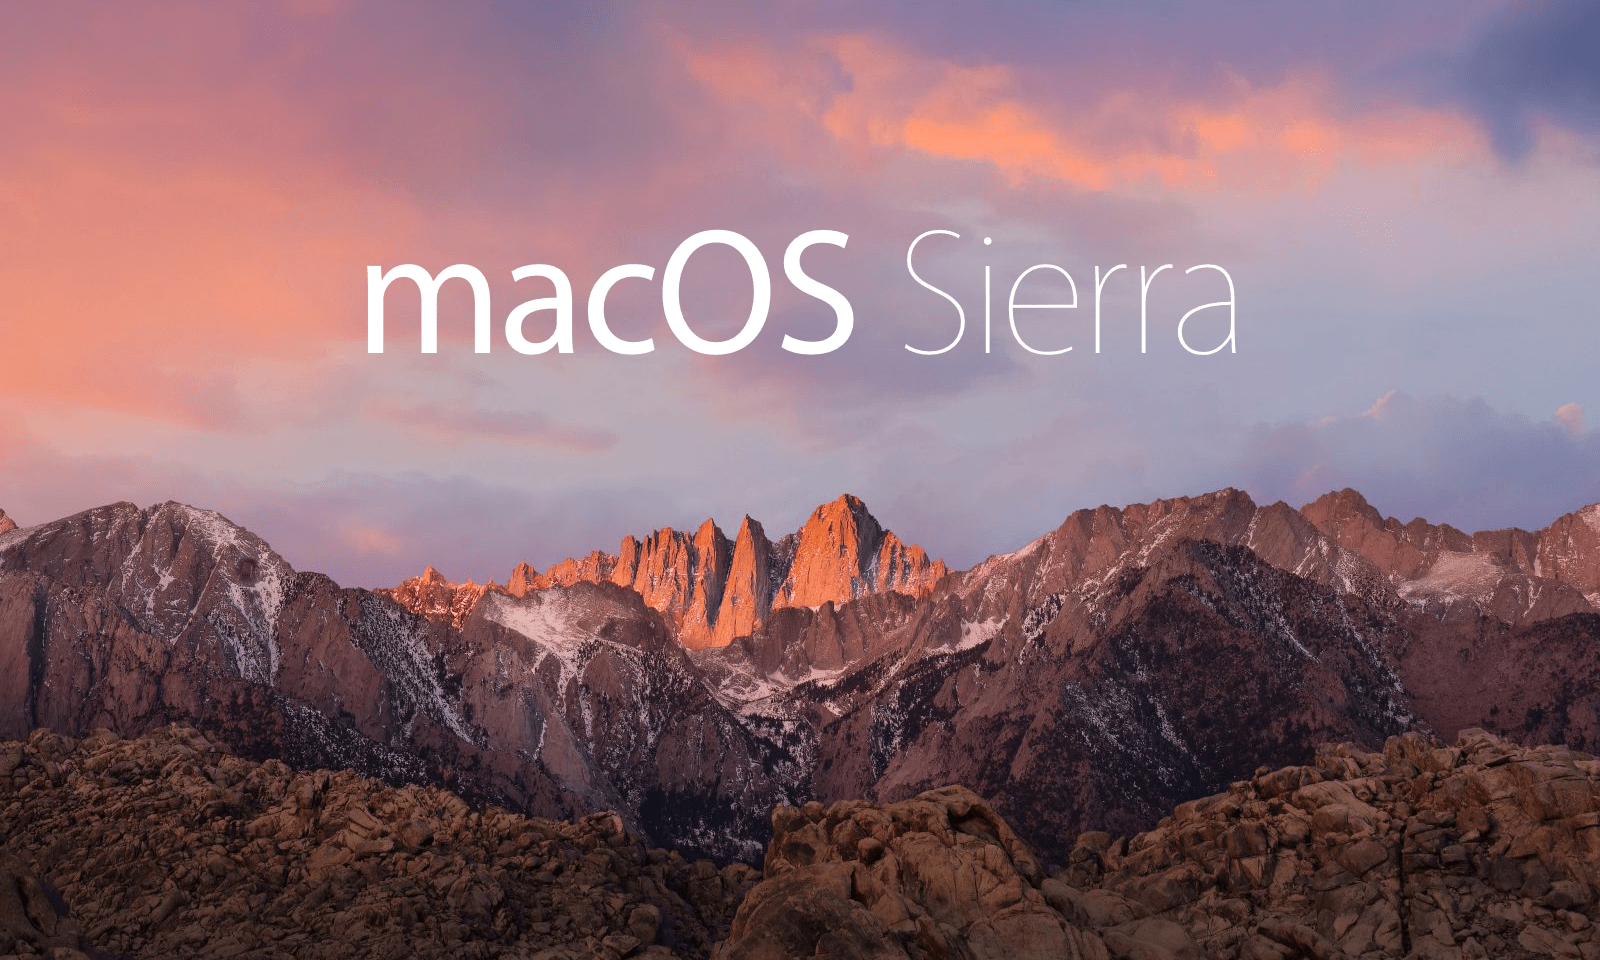 Install MacOS Sierra on Unsupported Older Macs 1